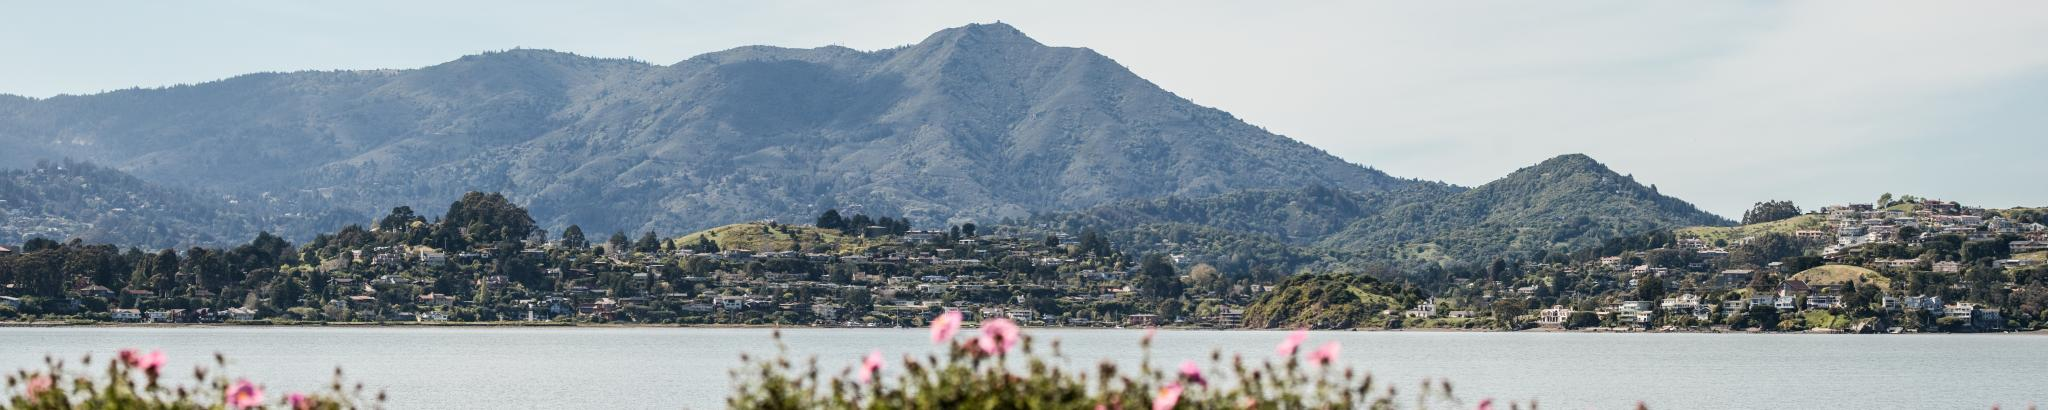 Profile of Mount Tam viewed from across the water